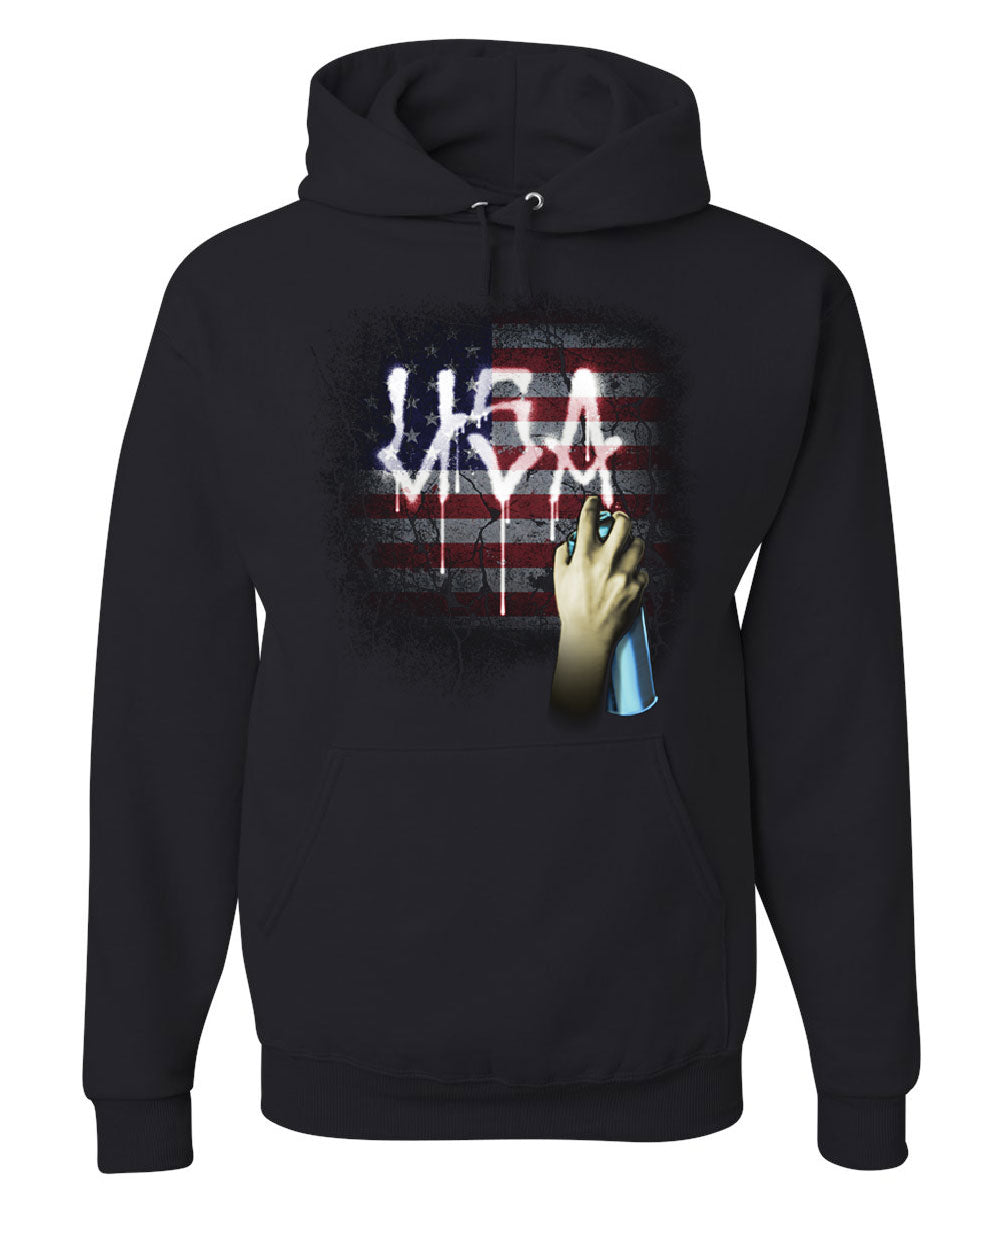 Usa Flag Graffiti Hoodie Stars And Stripes Urban Tag Wall Spray Sweatshirt